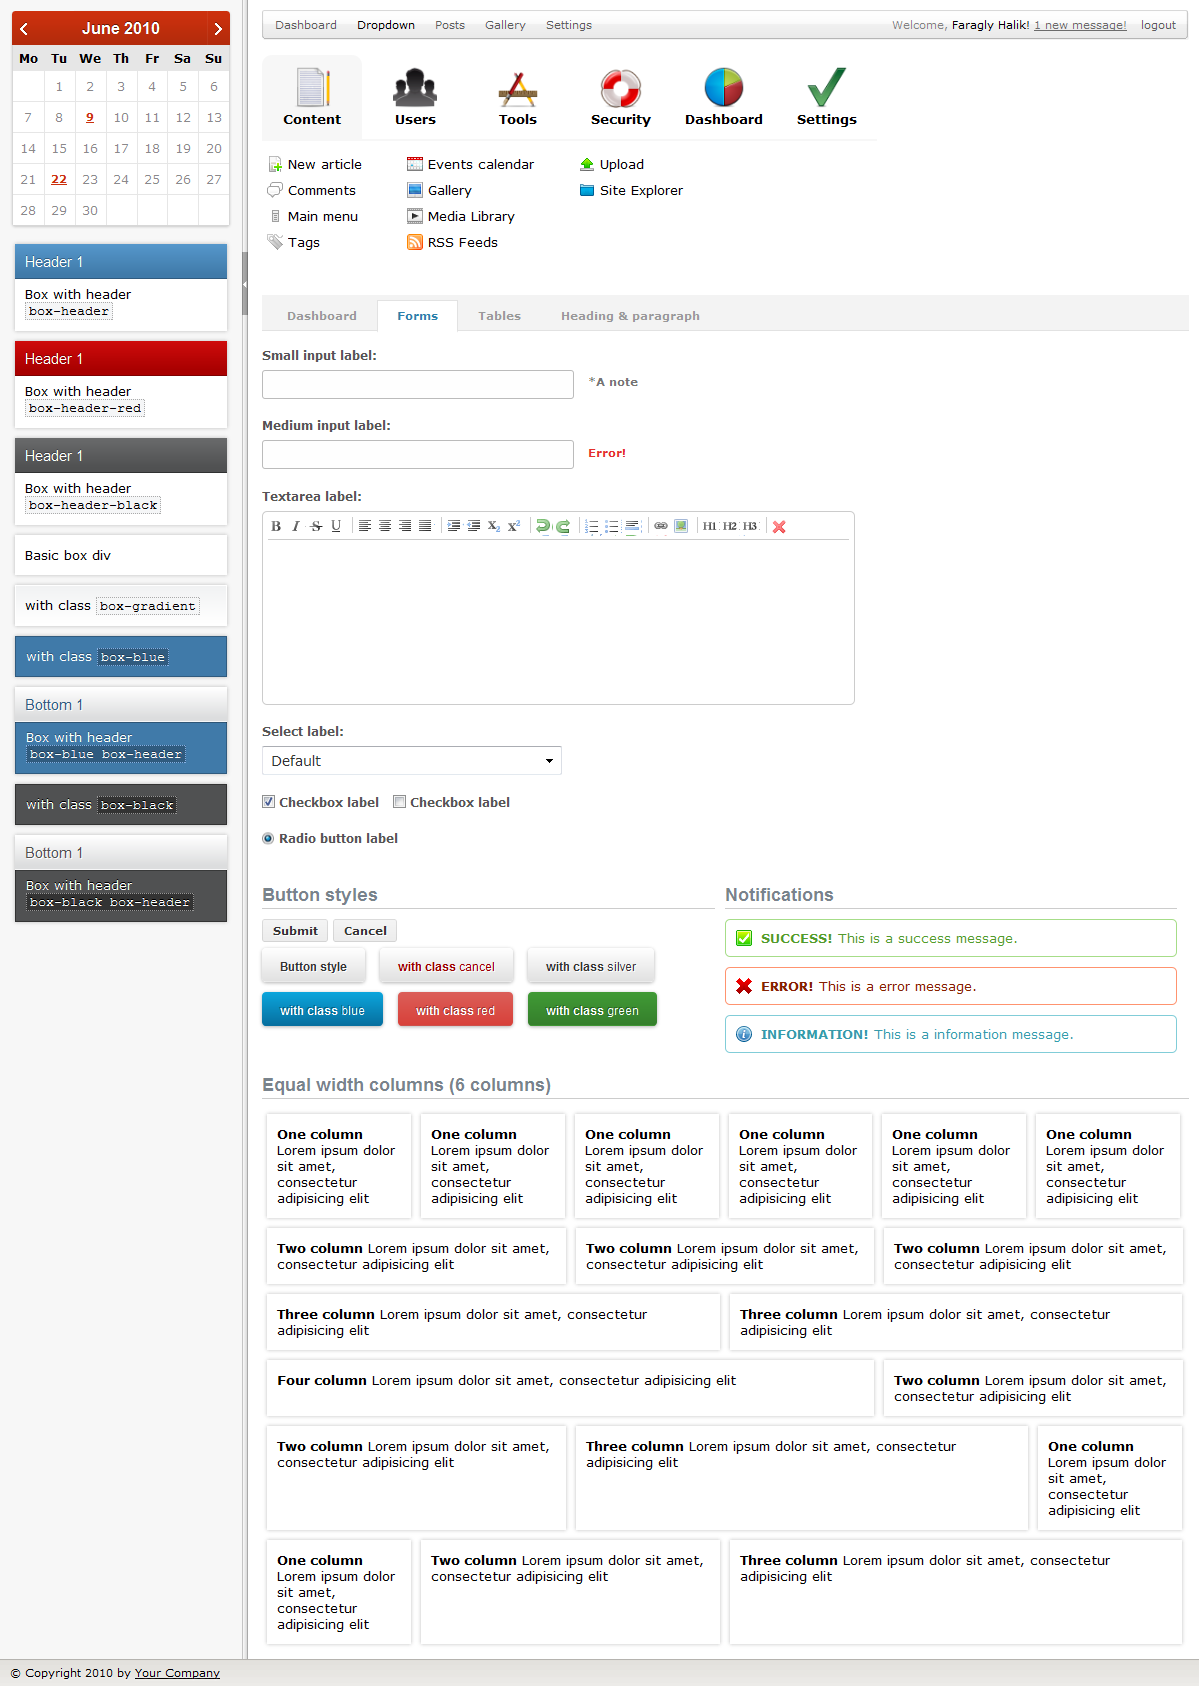 Karamel Admin - Screenshot of Forms page